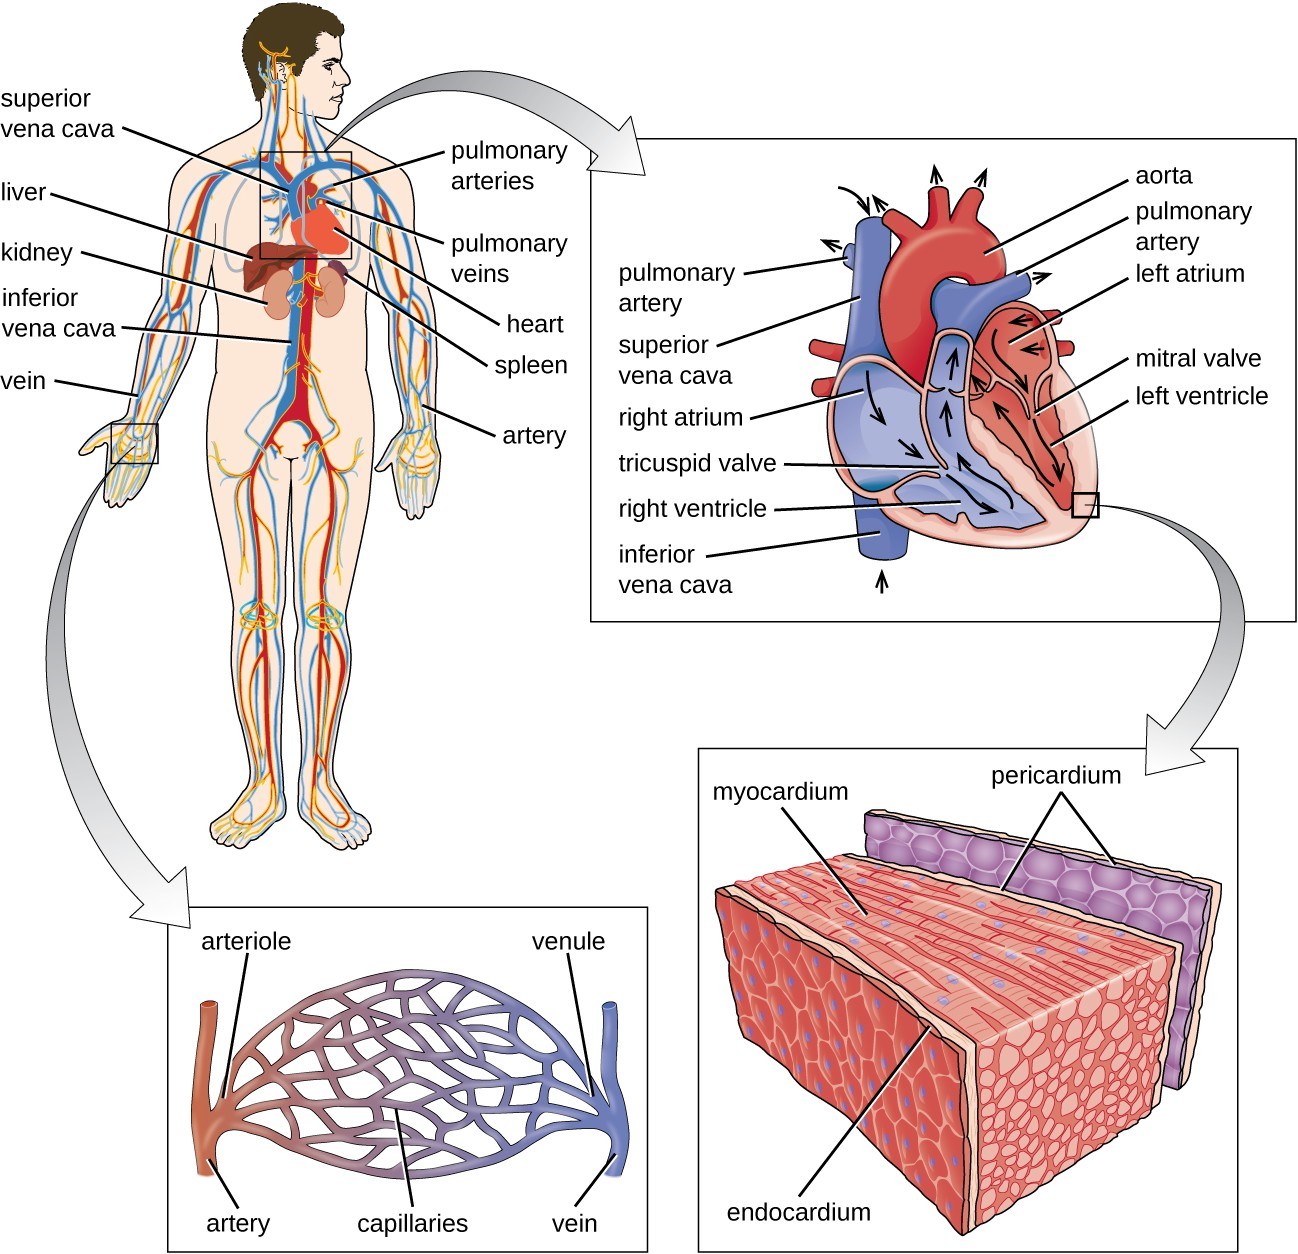 The major components of the human circulatory system include the heart, arteries, veins, and capillaries. This network delivers blood to the body's organs and tissues.